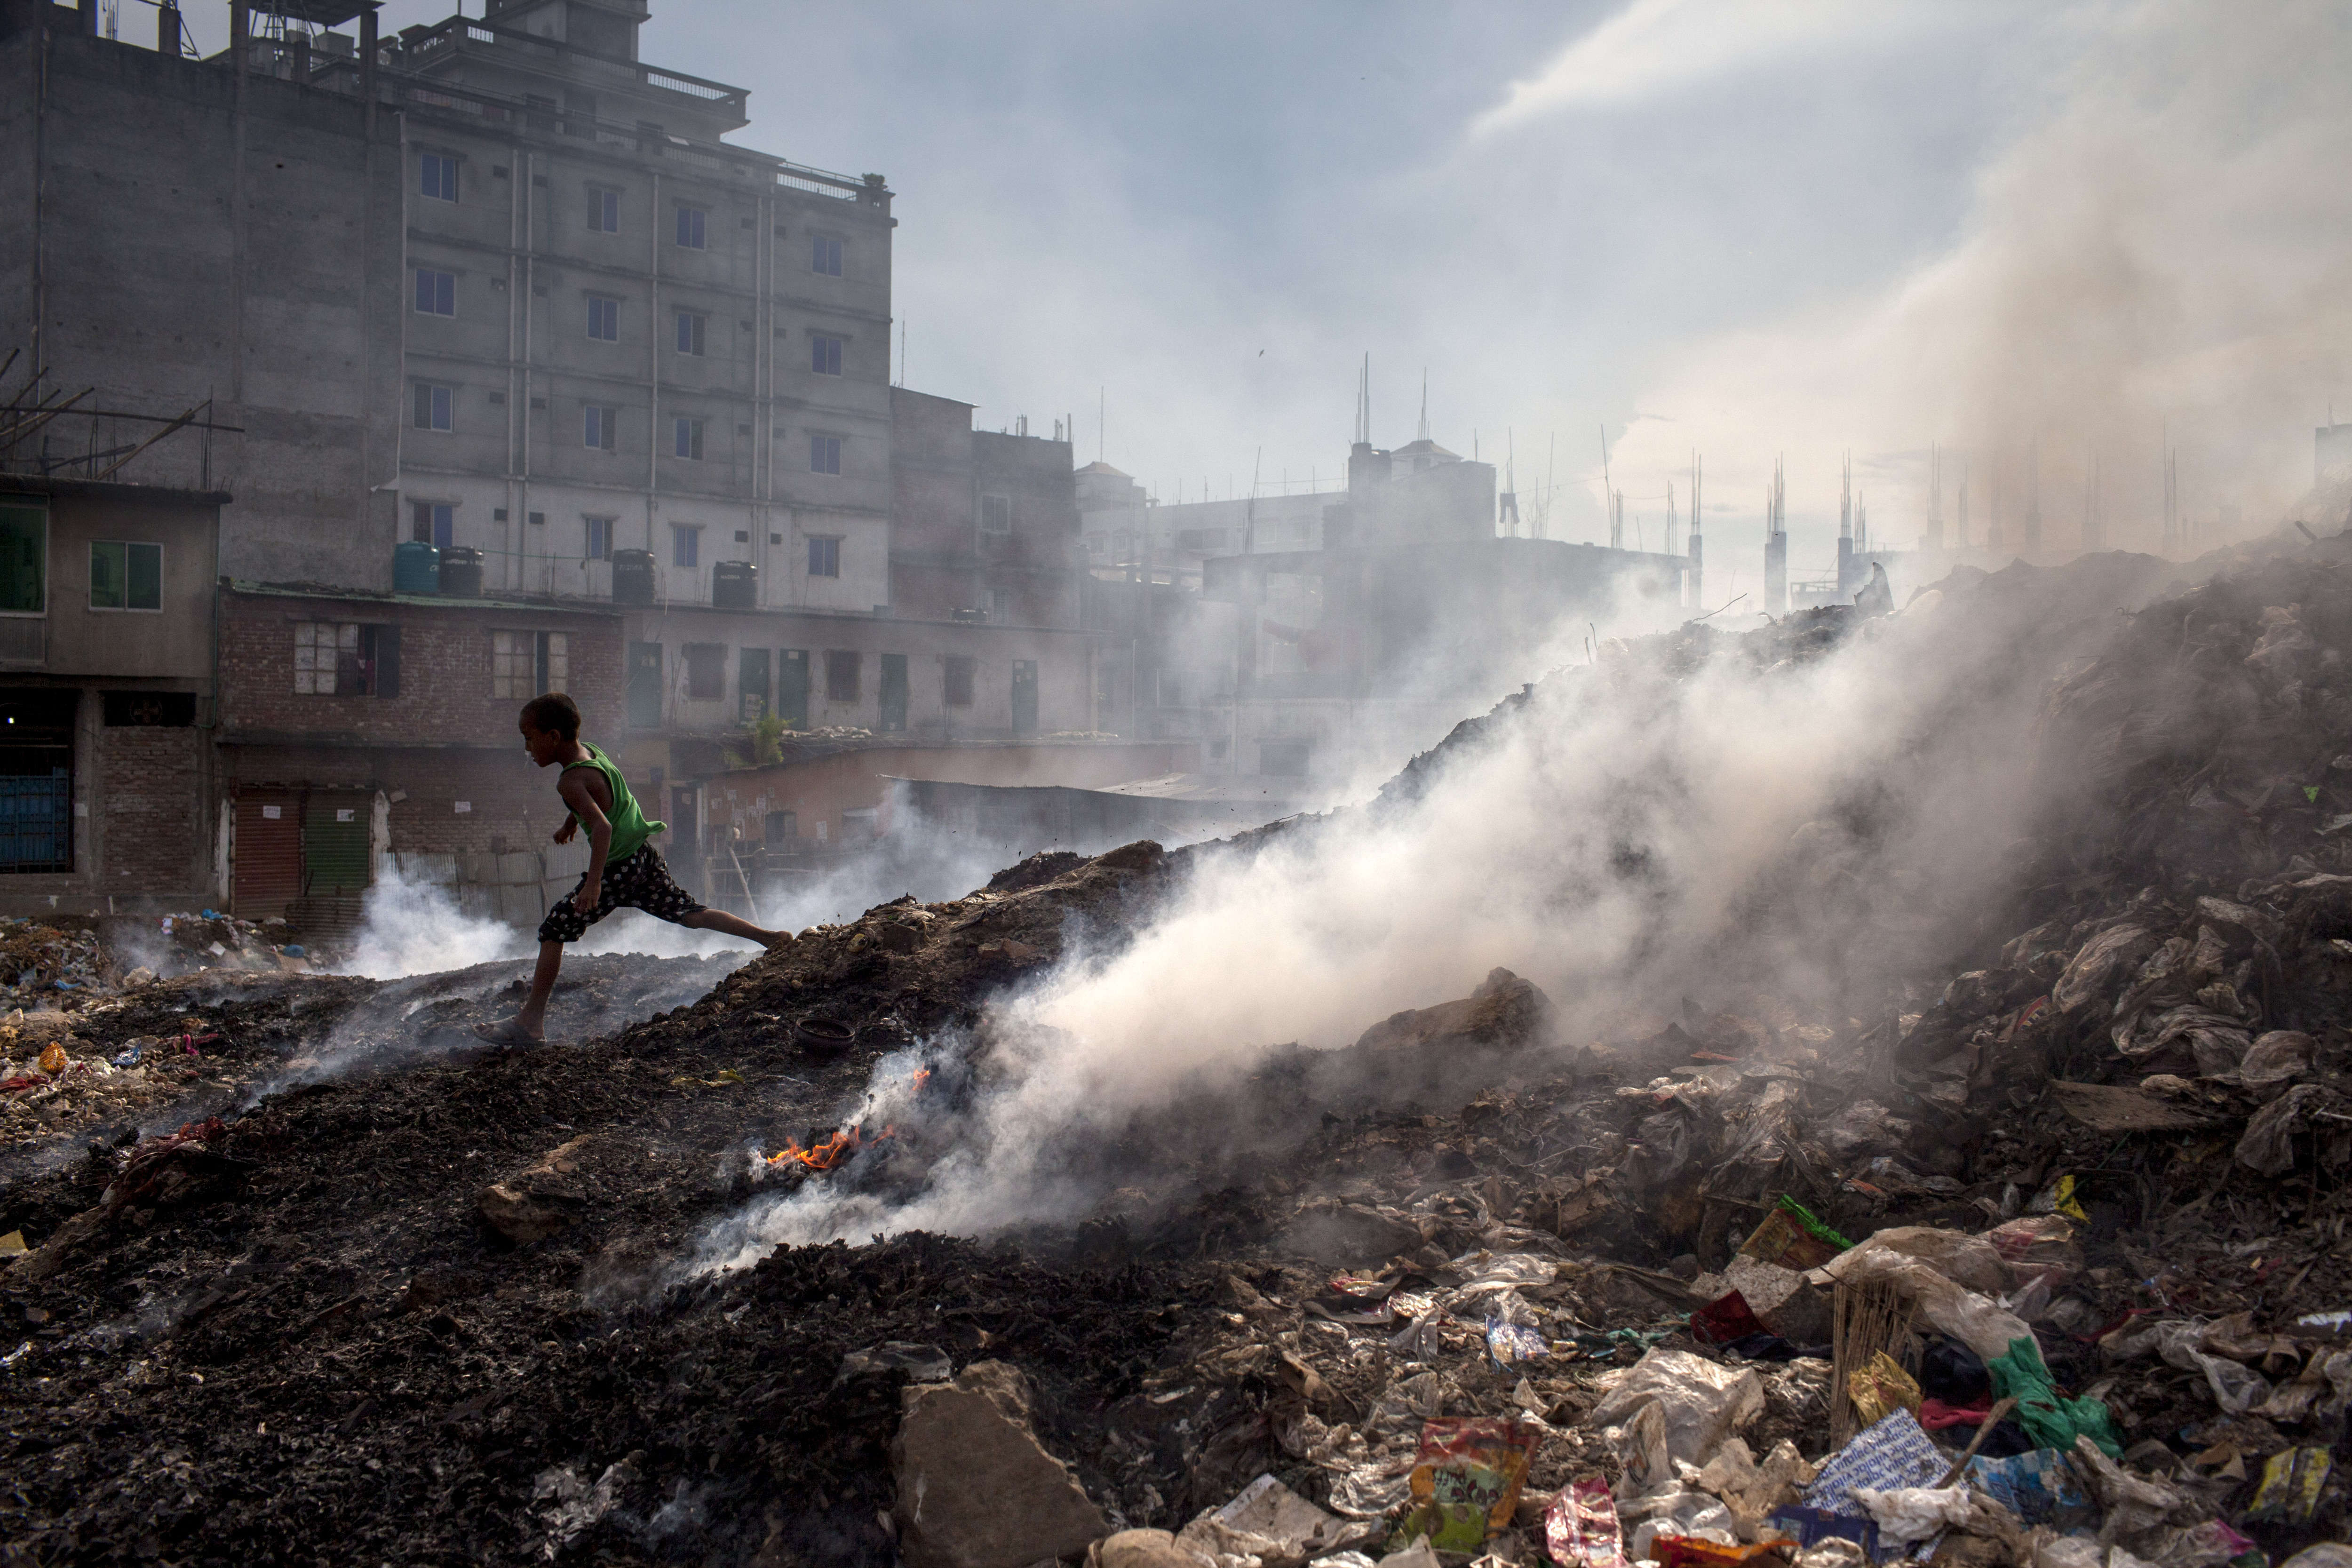 A child runs beside the waste-burning area of a dump in Dhaka, Bangladesh.